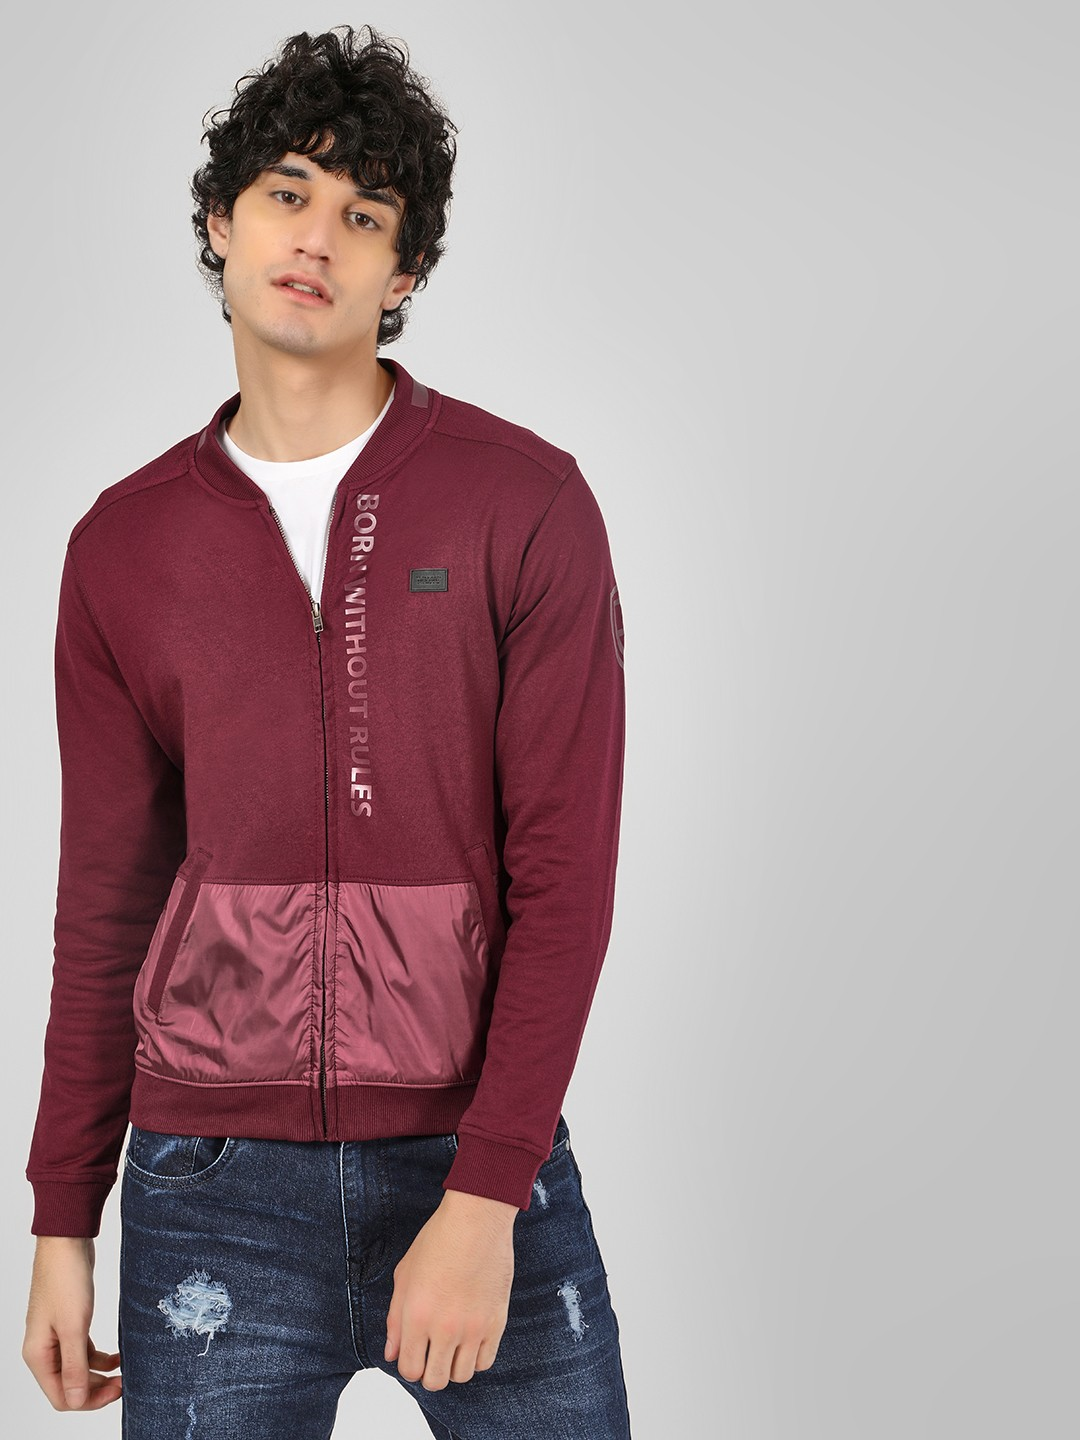 Flying Machine Maroon Zipper Cut And Sew Sweatshirt 1